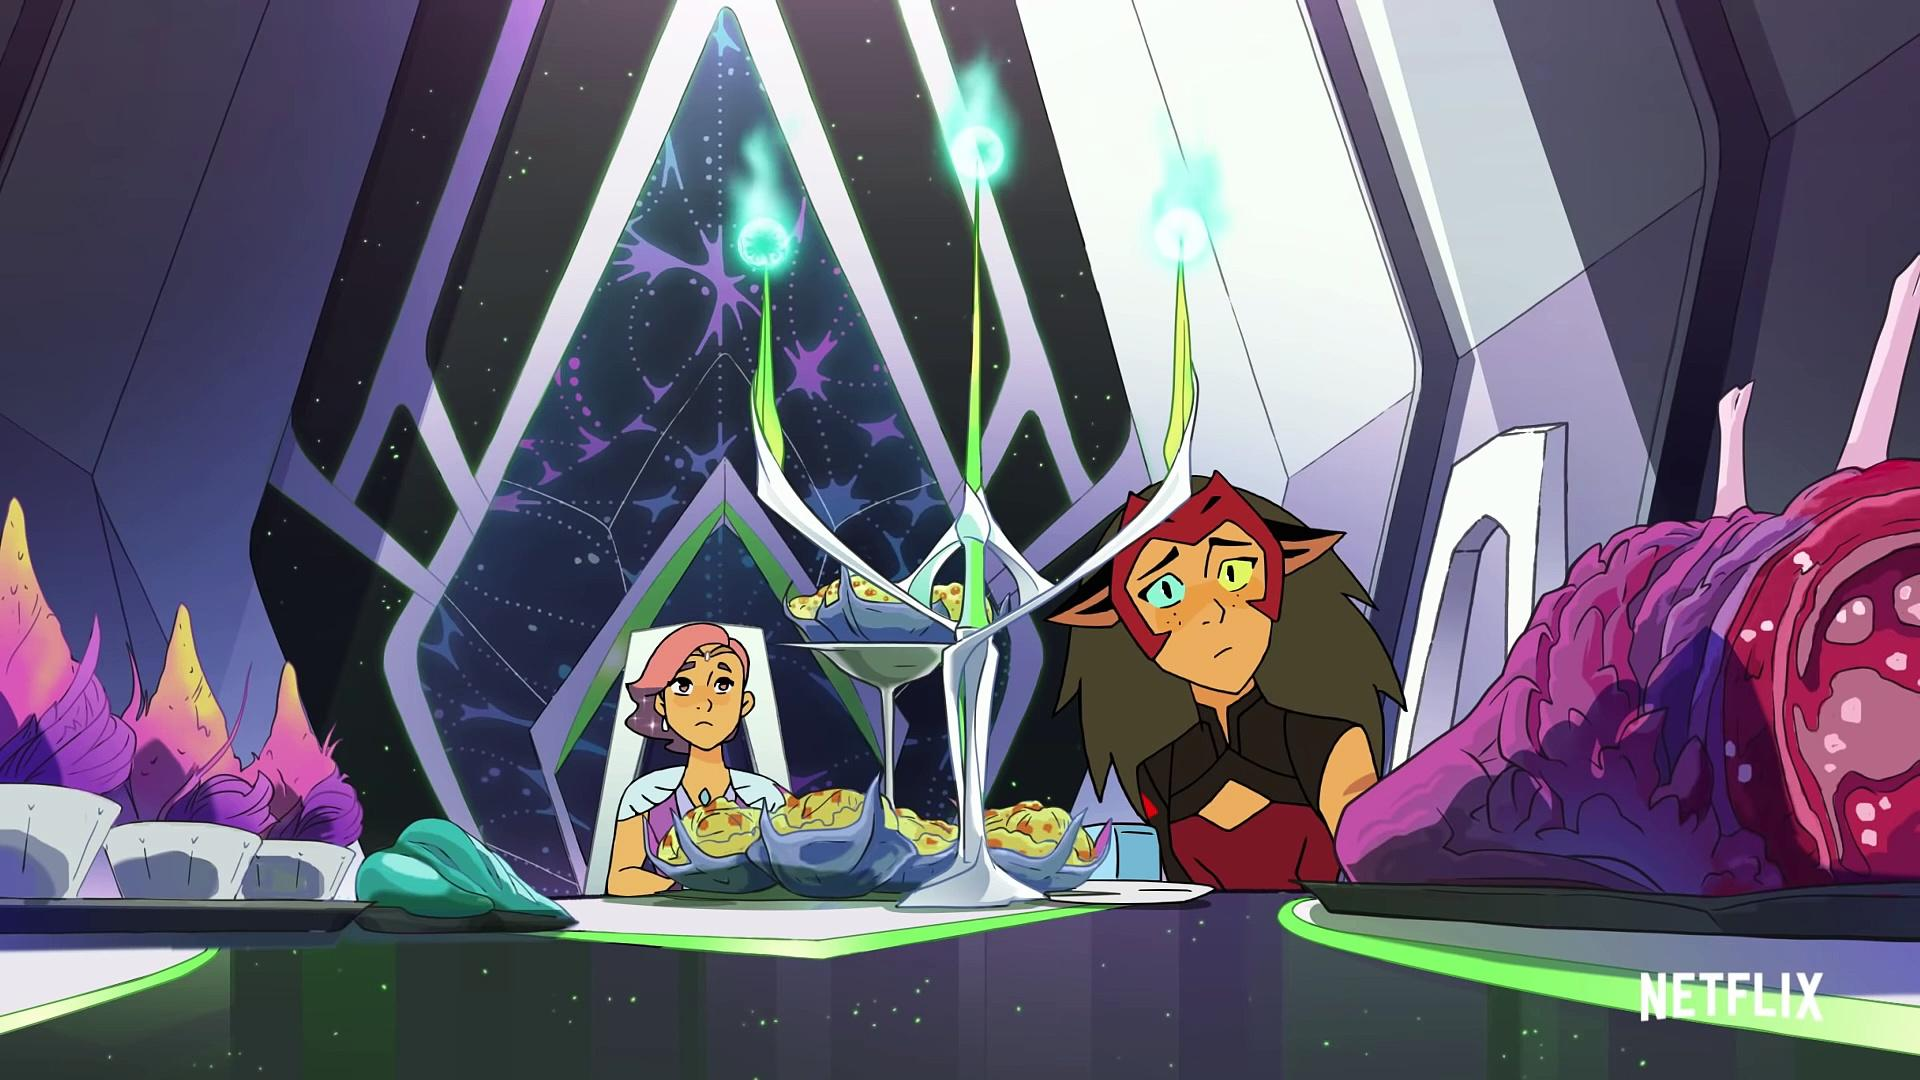 SHE-RA AND THE PRINCESSES OF POWER Season 5 Clip - One News Page VIDEO